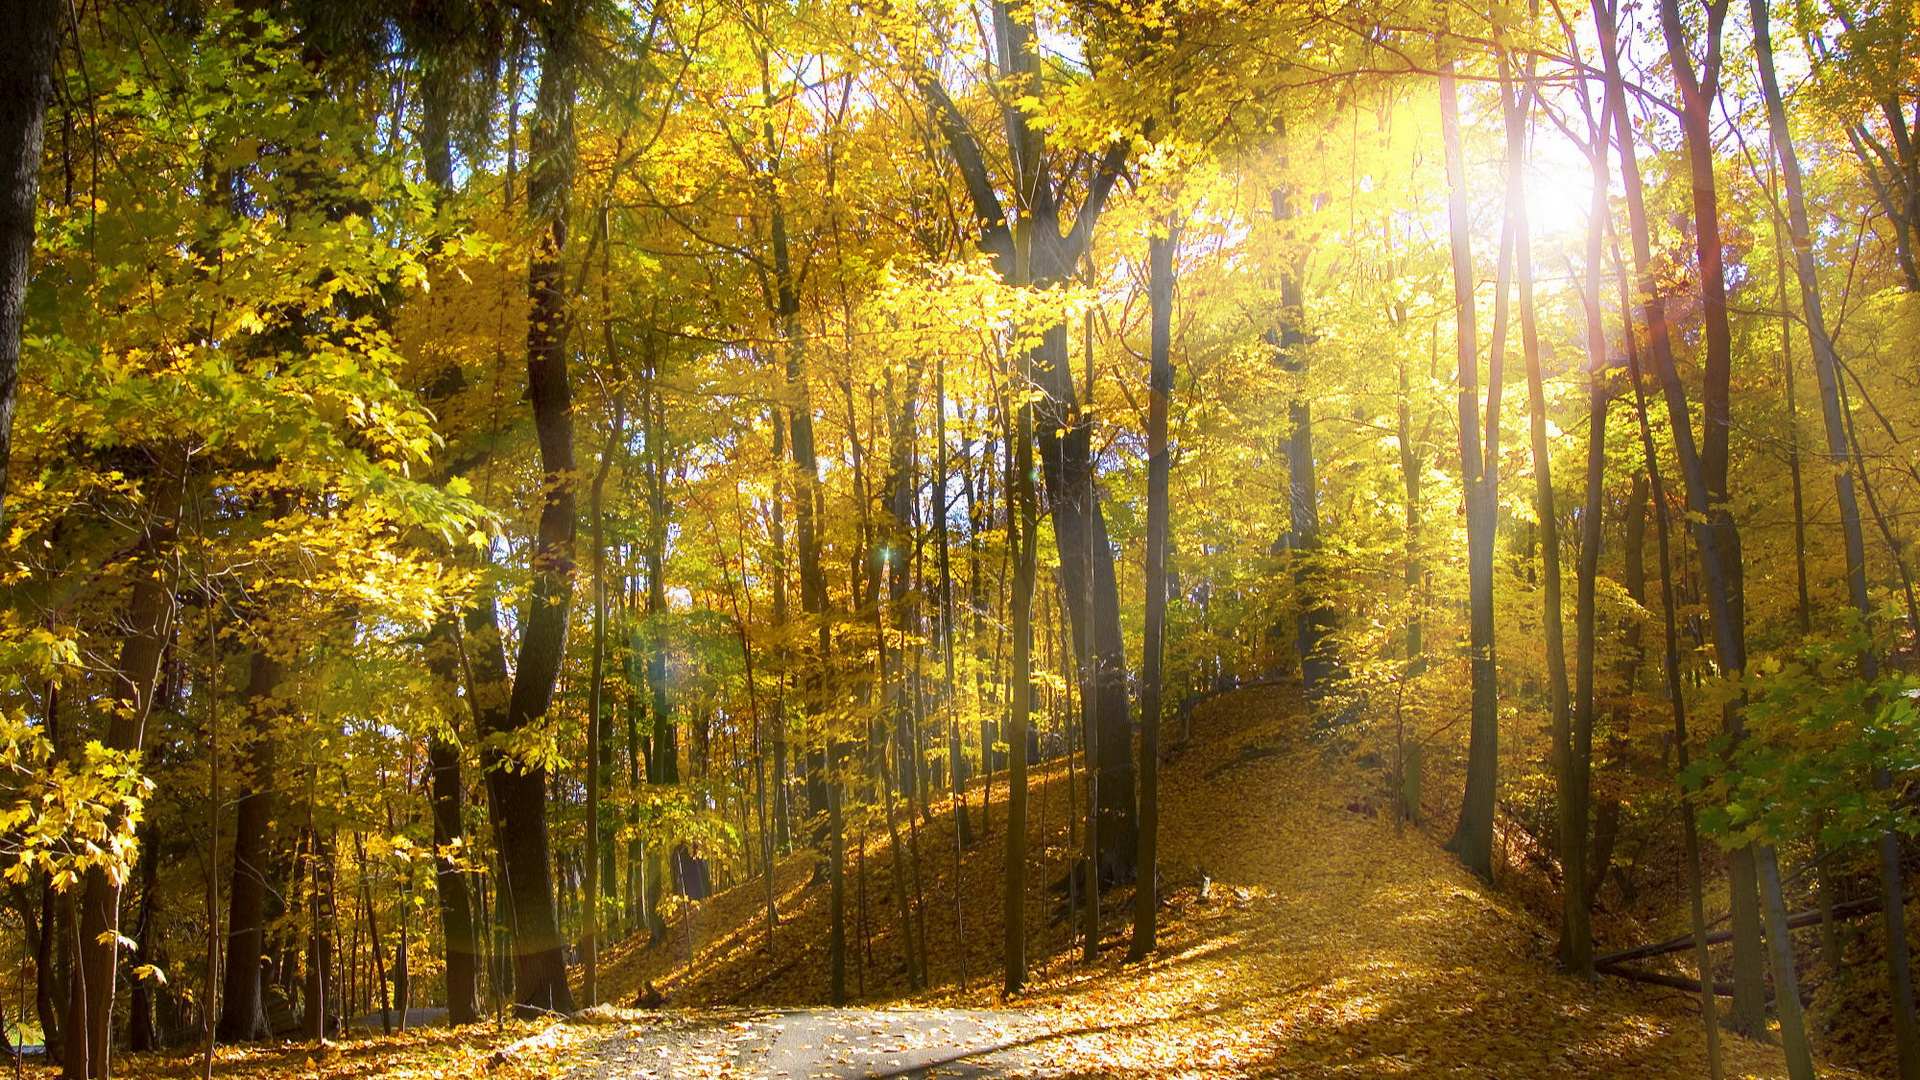 Autumn-Forest-Sunlit-Golden-1920x1080-Need-iPhone-S-Plus-Background-for-IPhoneS-wallpaper-wp3402692